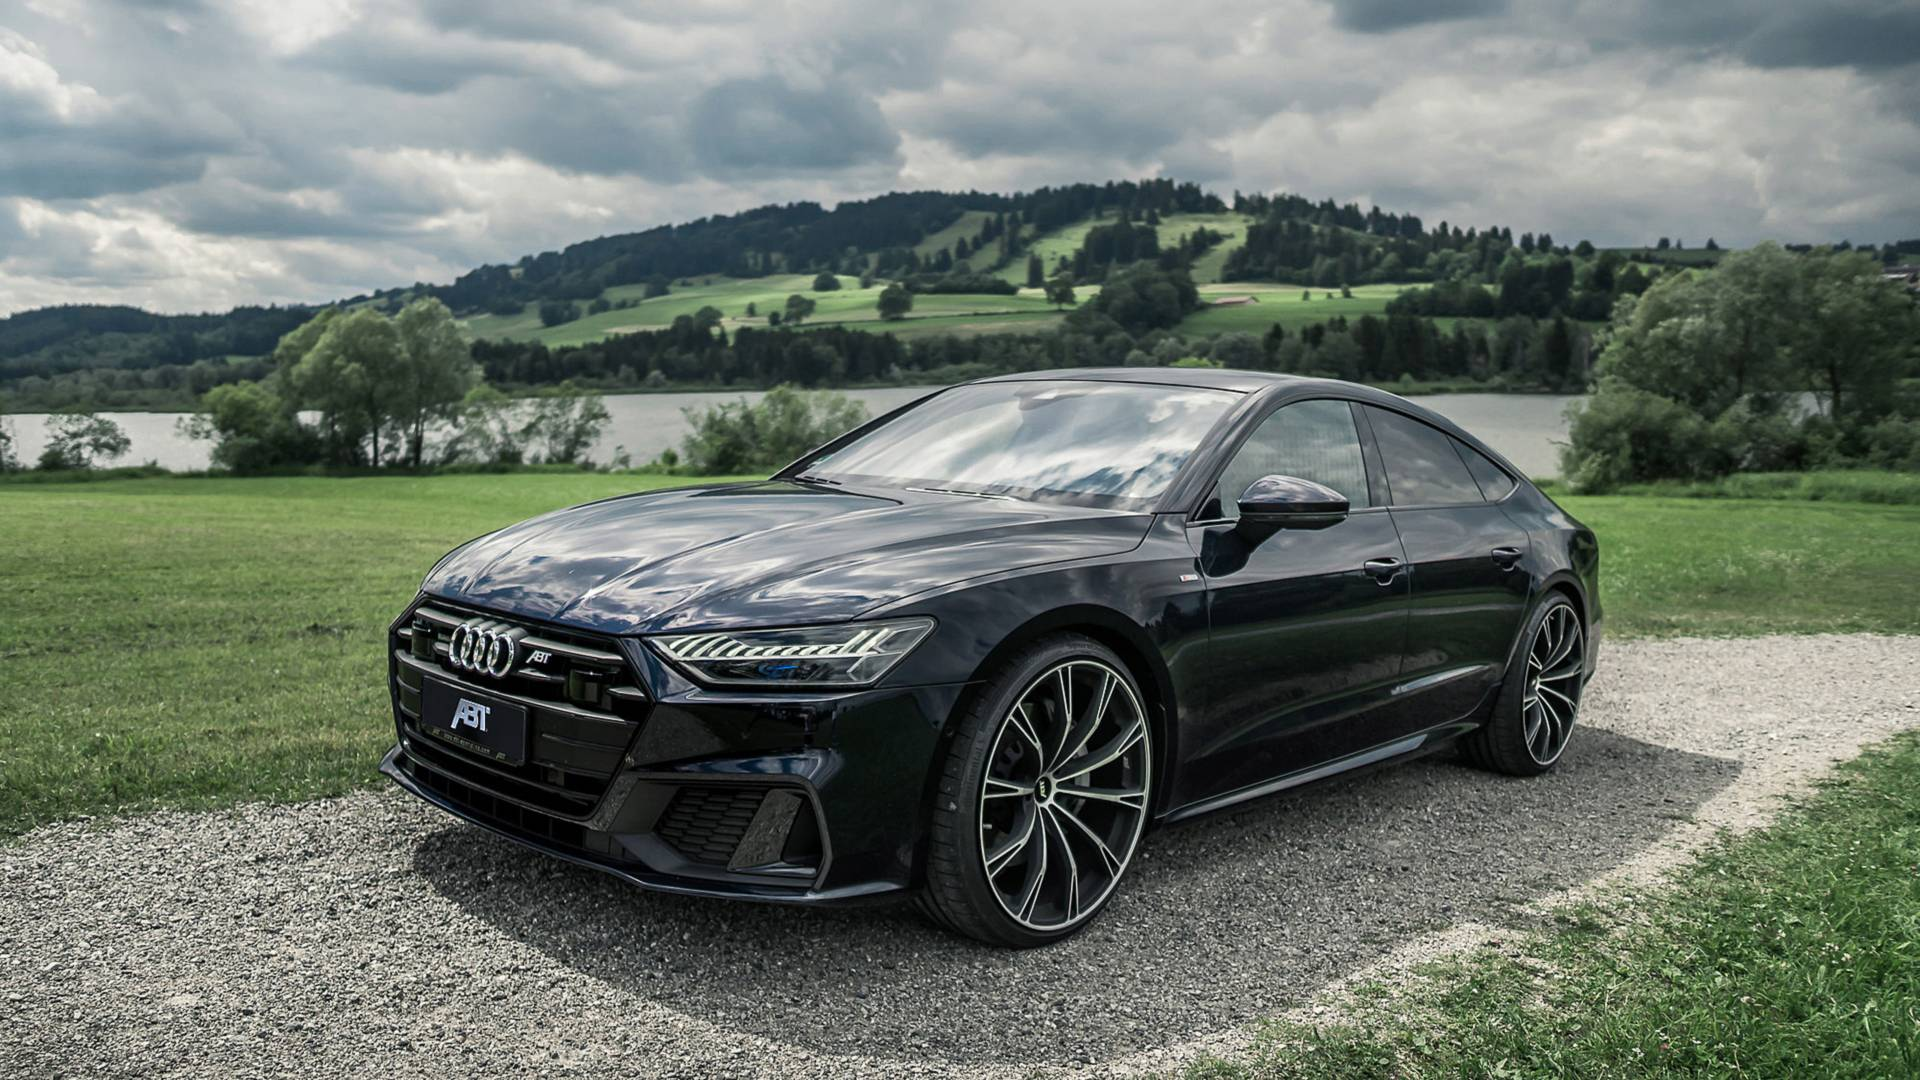 abt sportsline revela novo audi a7 sportback motores sapo. Black Bedroom Furniture Sets. Home Design Ideas